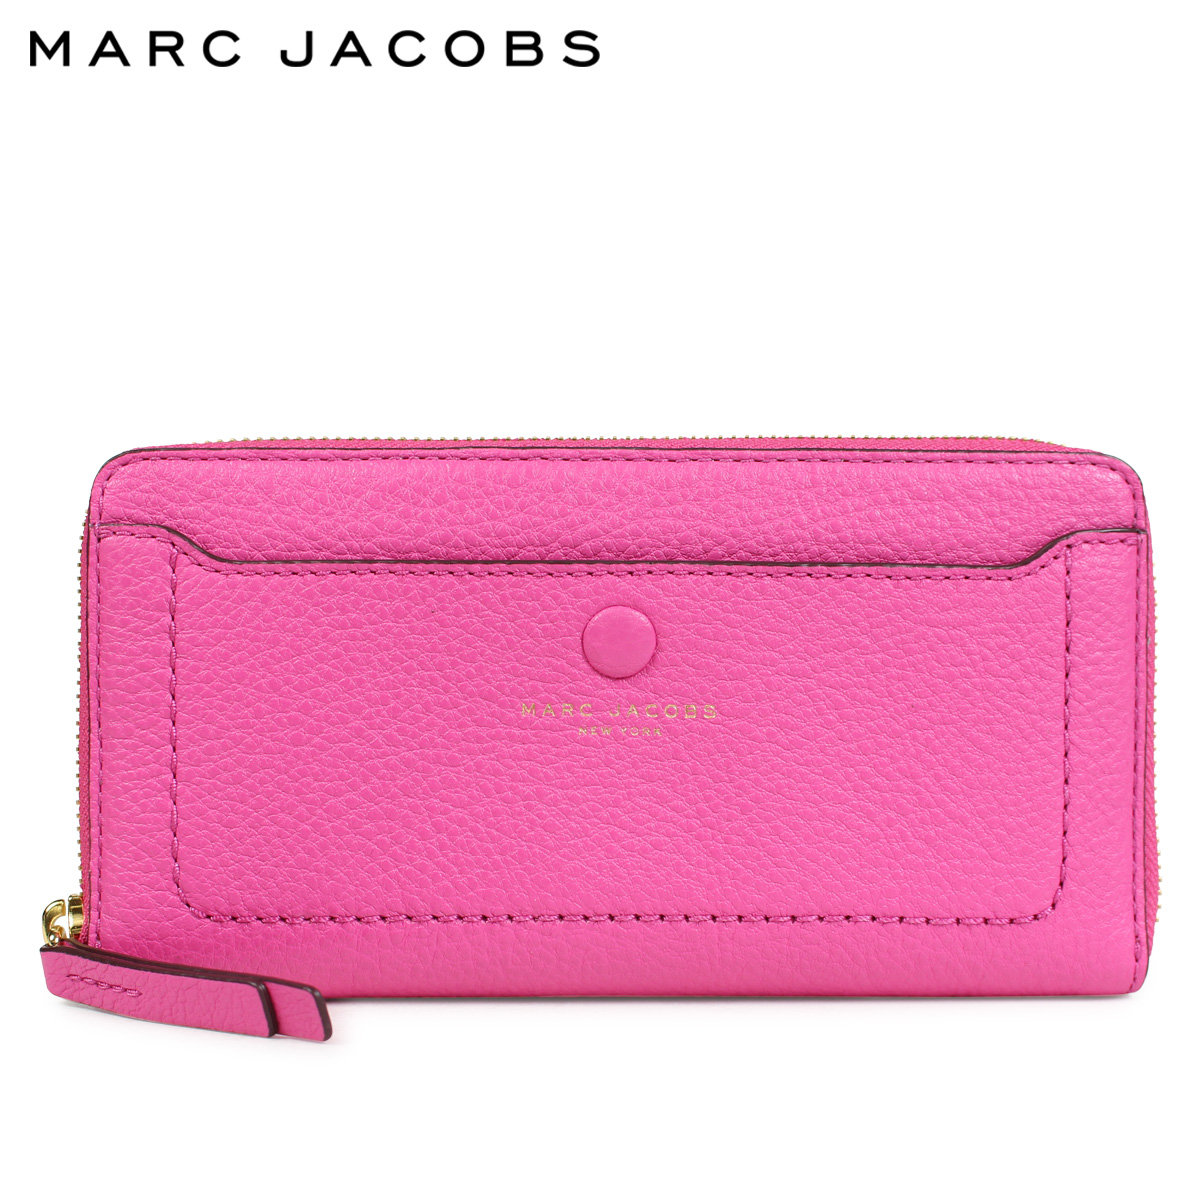 MARC JACOBS マークジェイコブス 財布 長財布 レディース ラウンドファスナー レザー LEATHER VERTICAL ZIP-AROUND WALLET ピンク M0013948